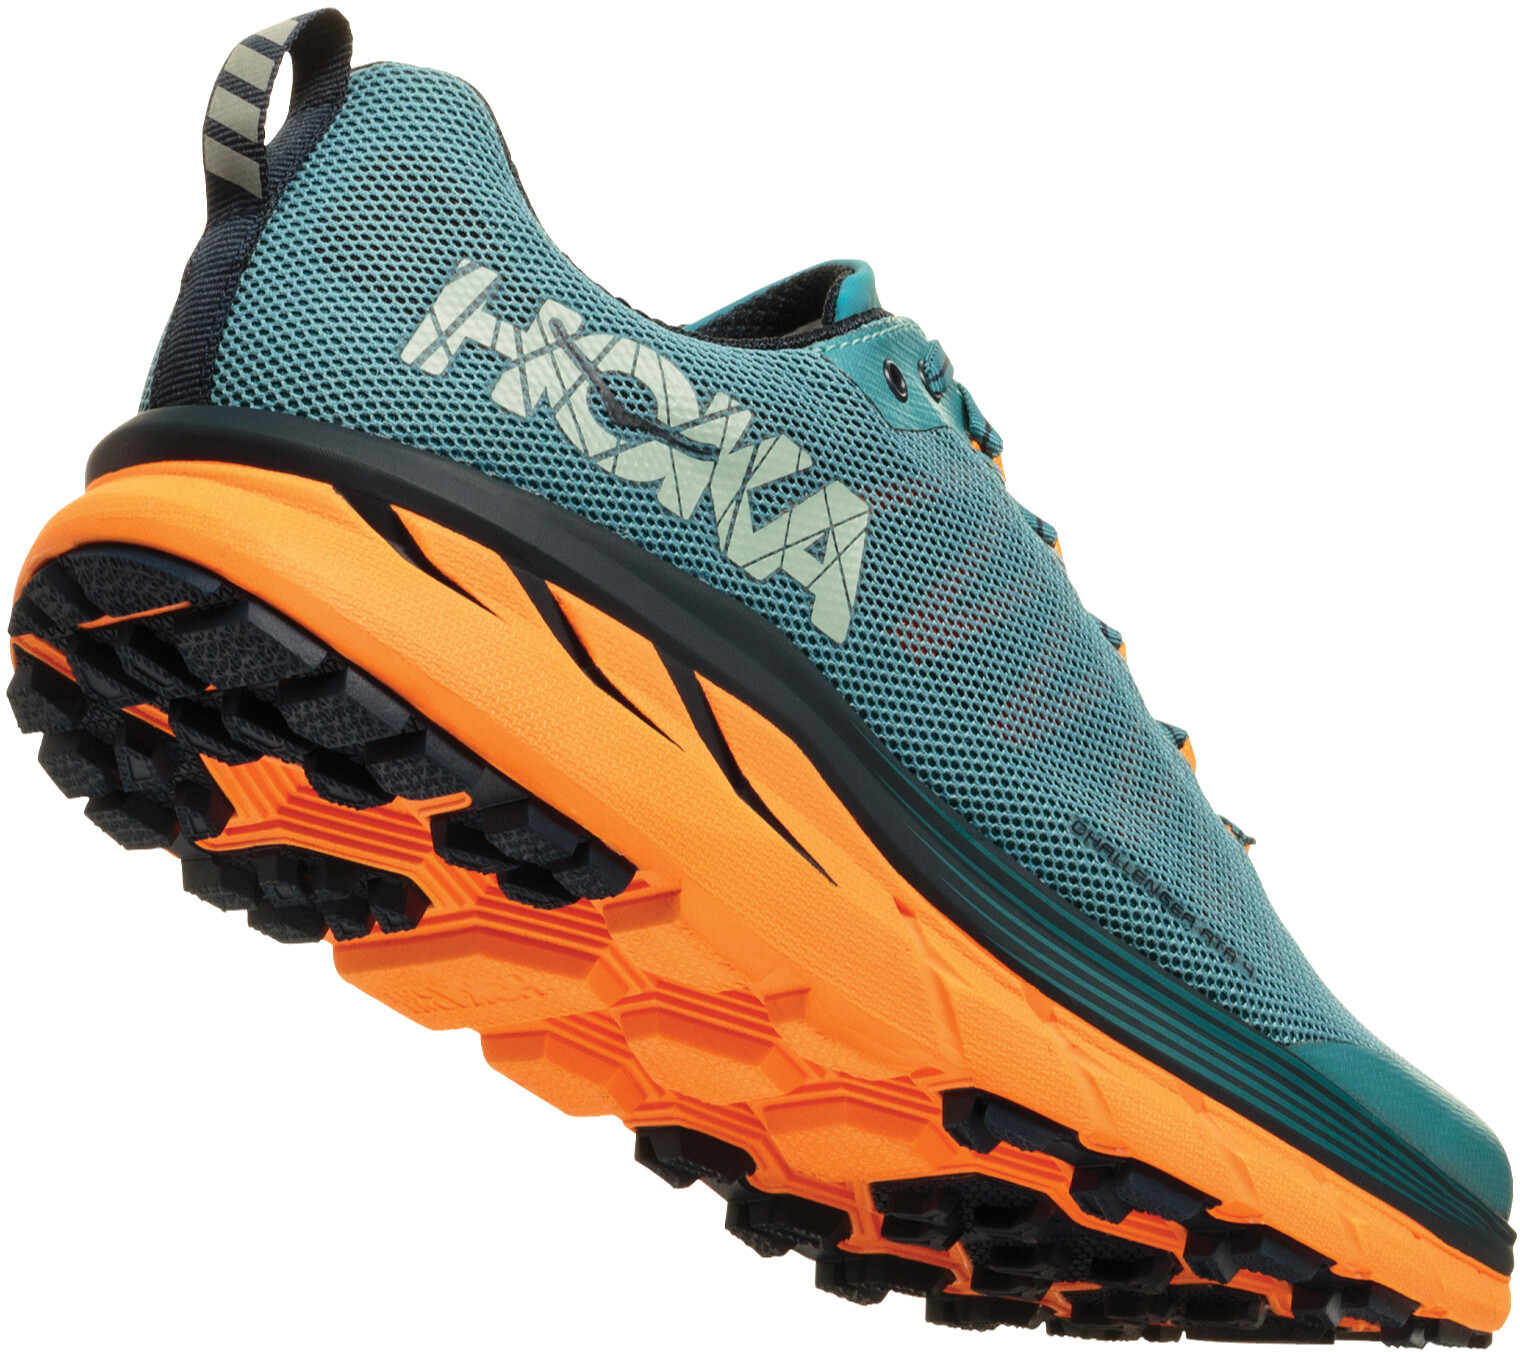 a9855ac6dff0 Hoka One One Challenger ATR 4 Running Shoes Men orange teal at ...